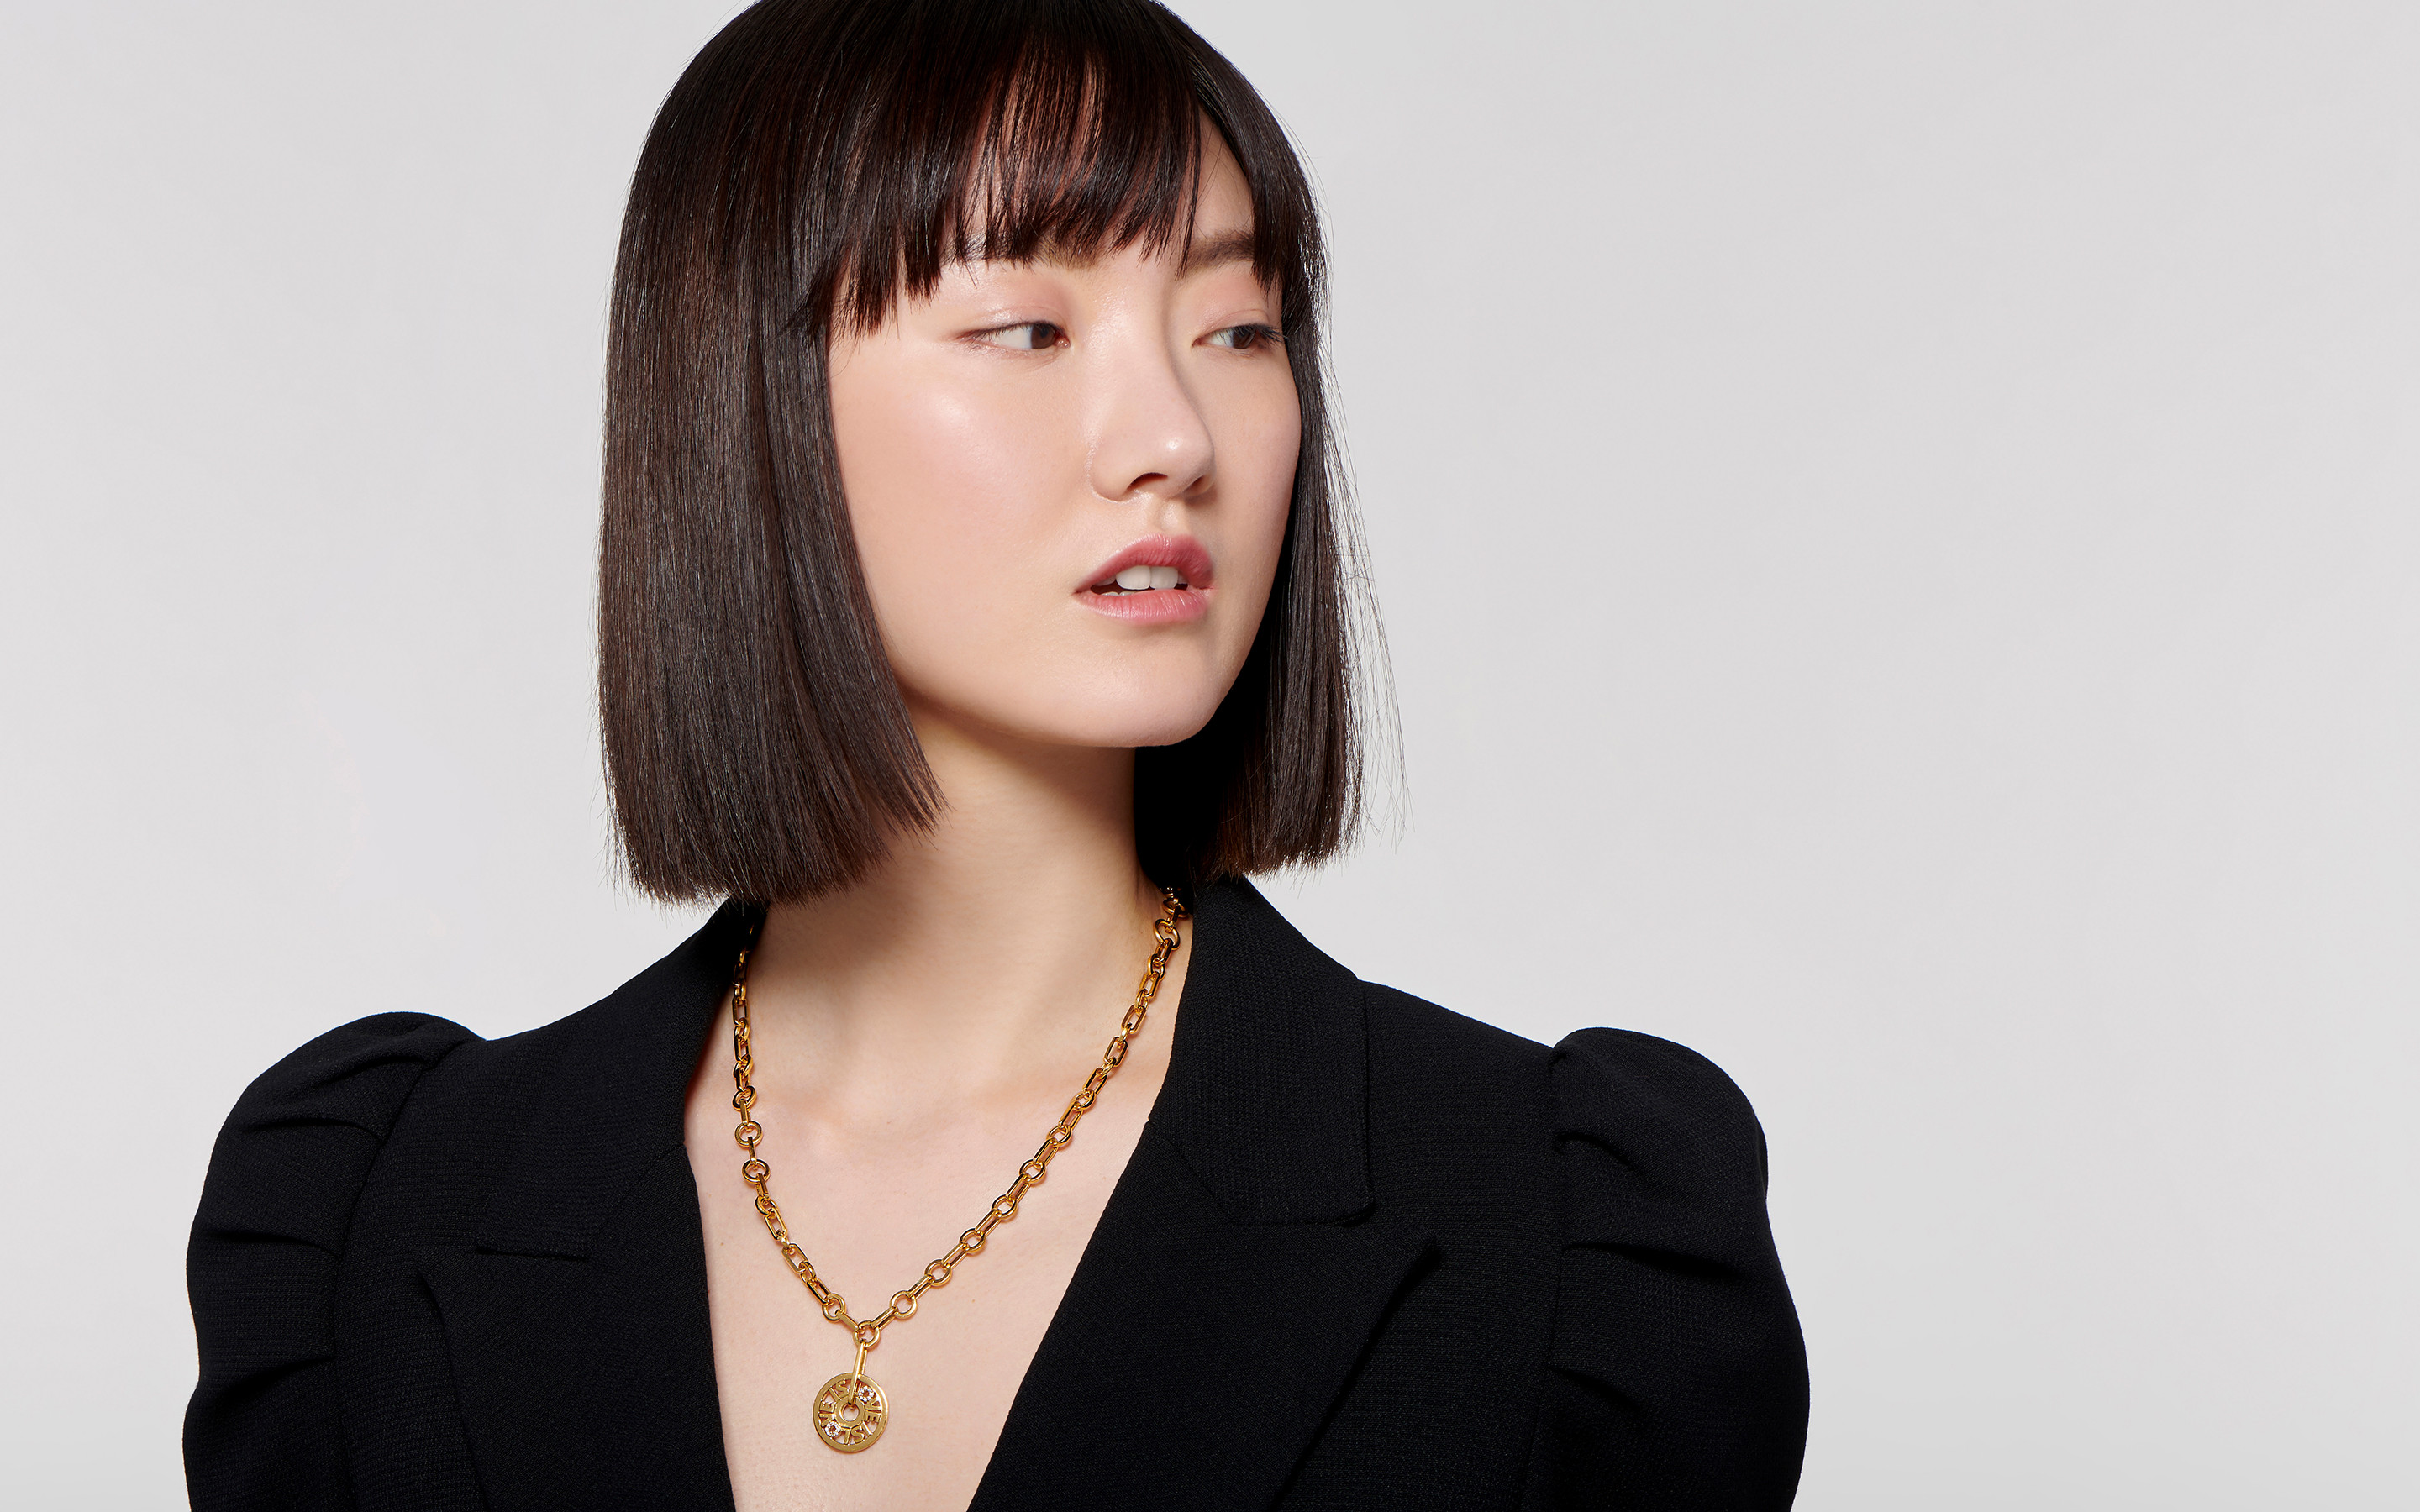 Stunning Asian model decorated with a love is love 22 karat gold necklace